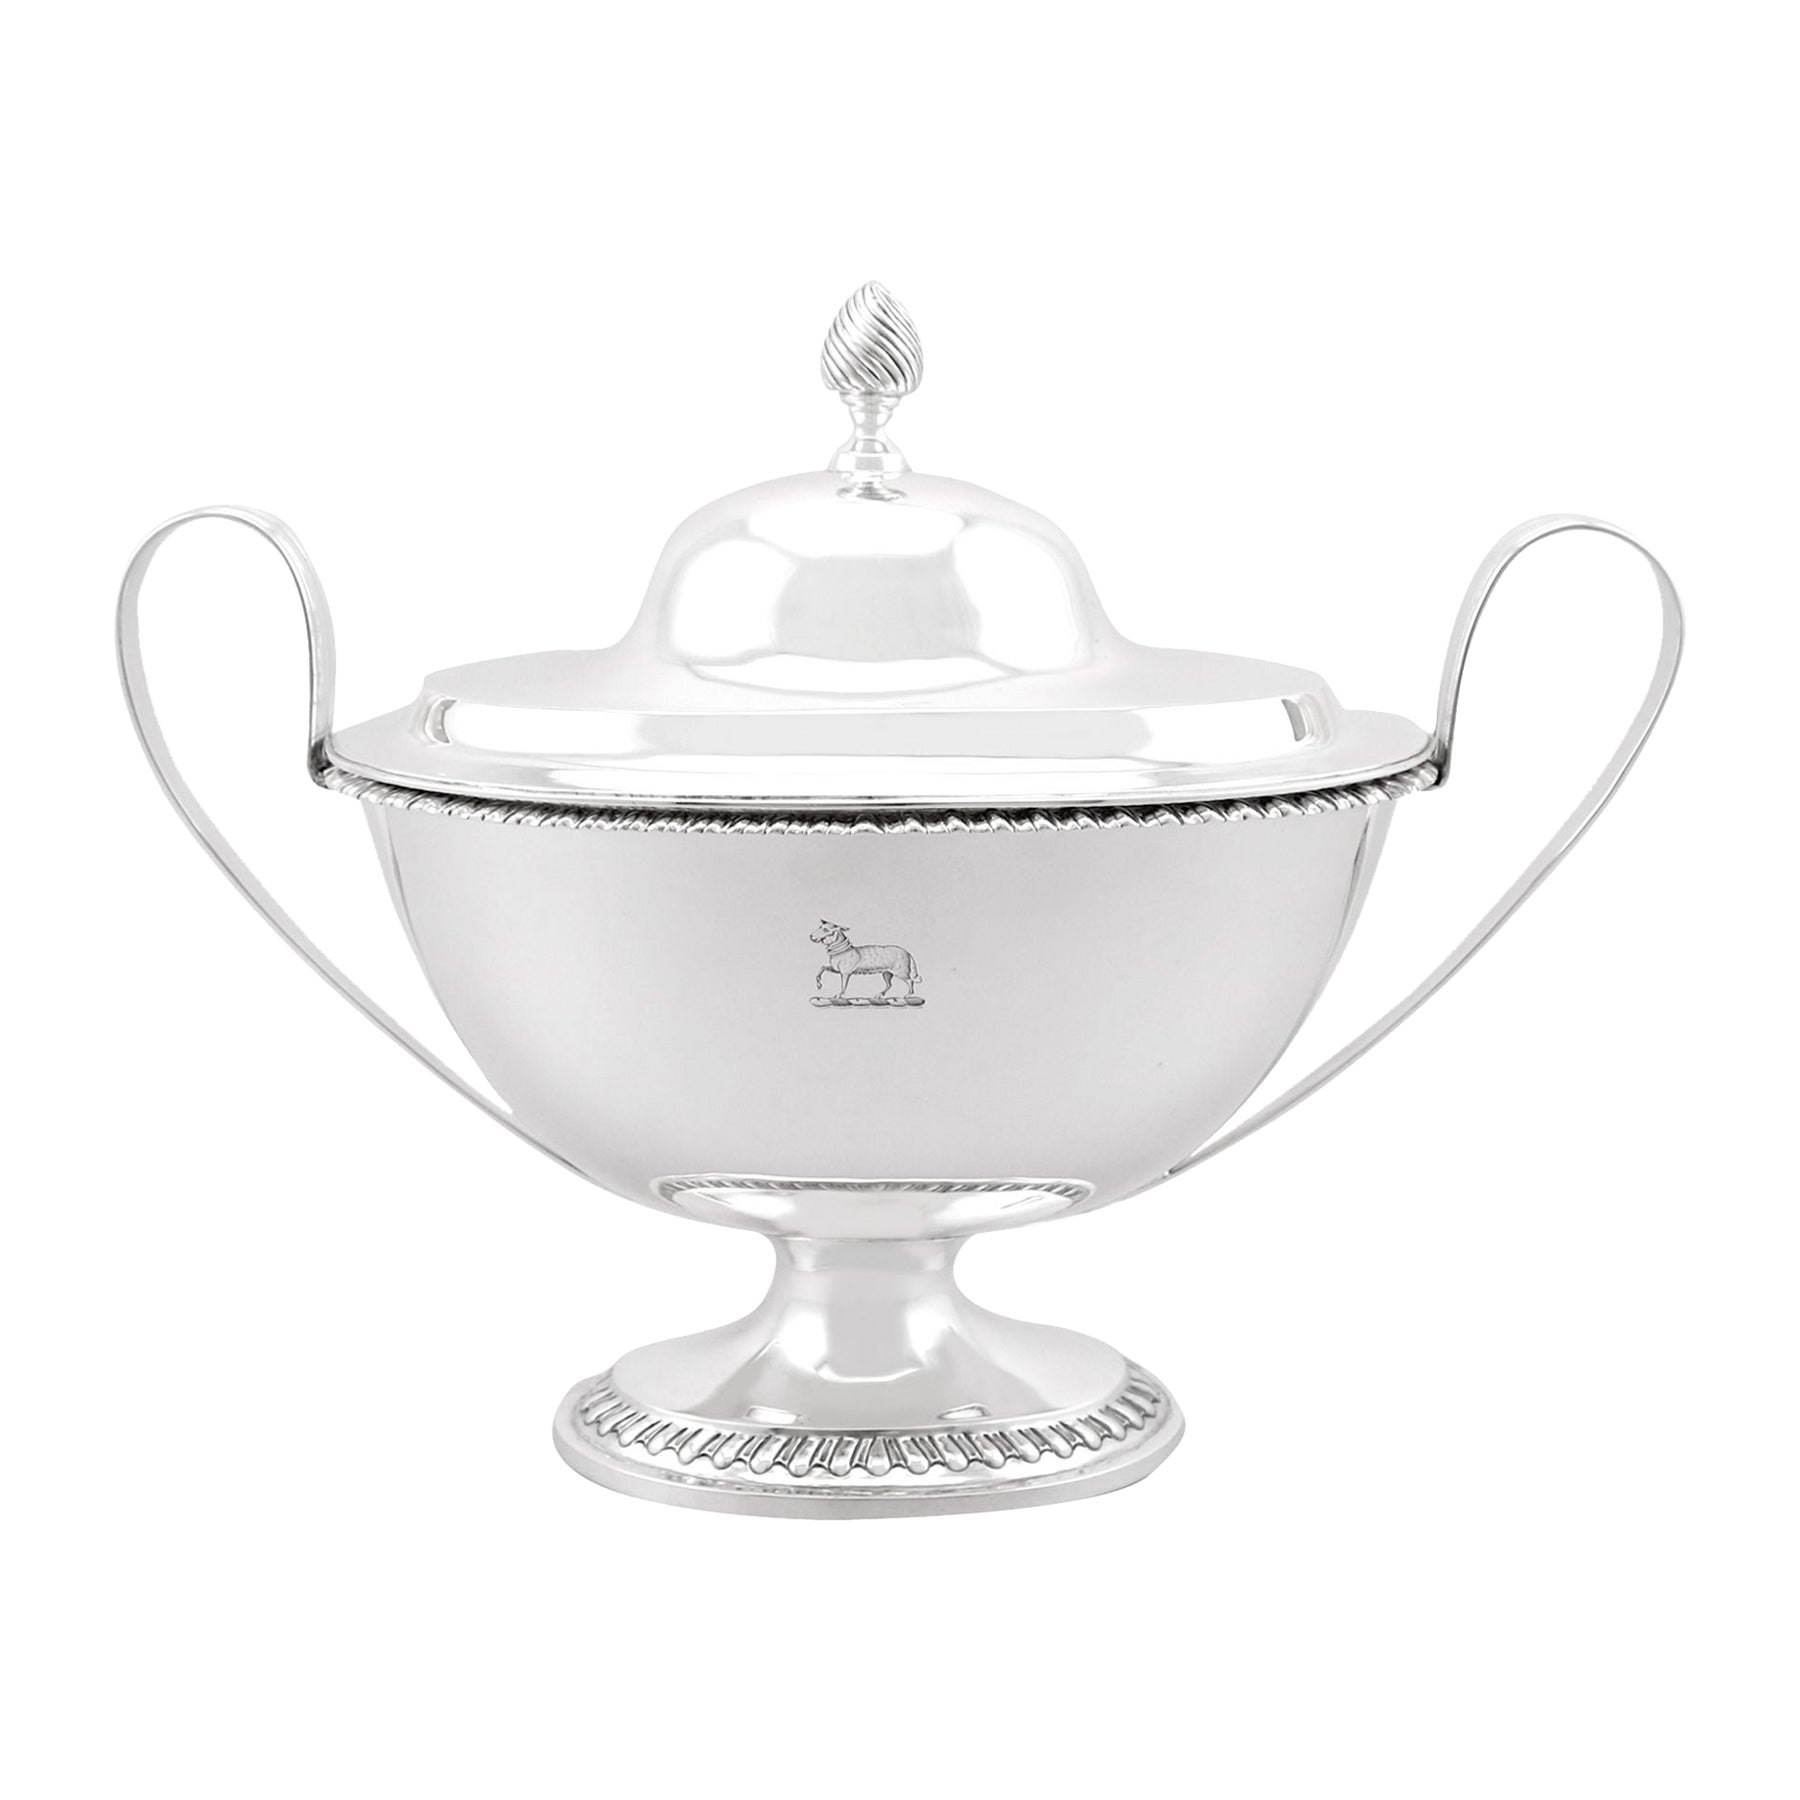 Antique Victorian Sterling Silver Tureen